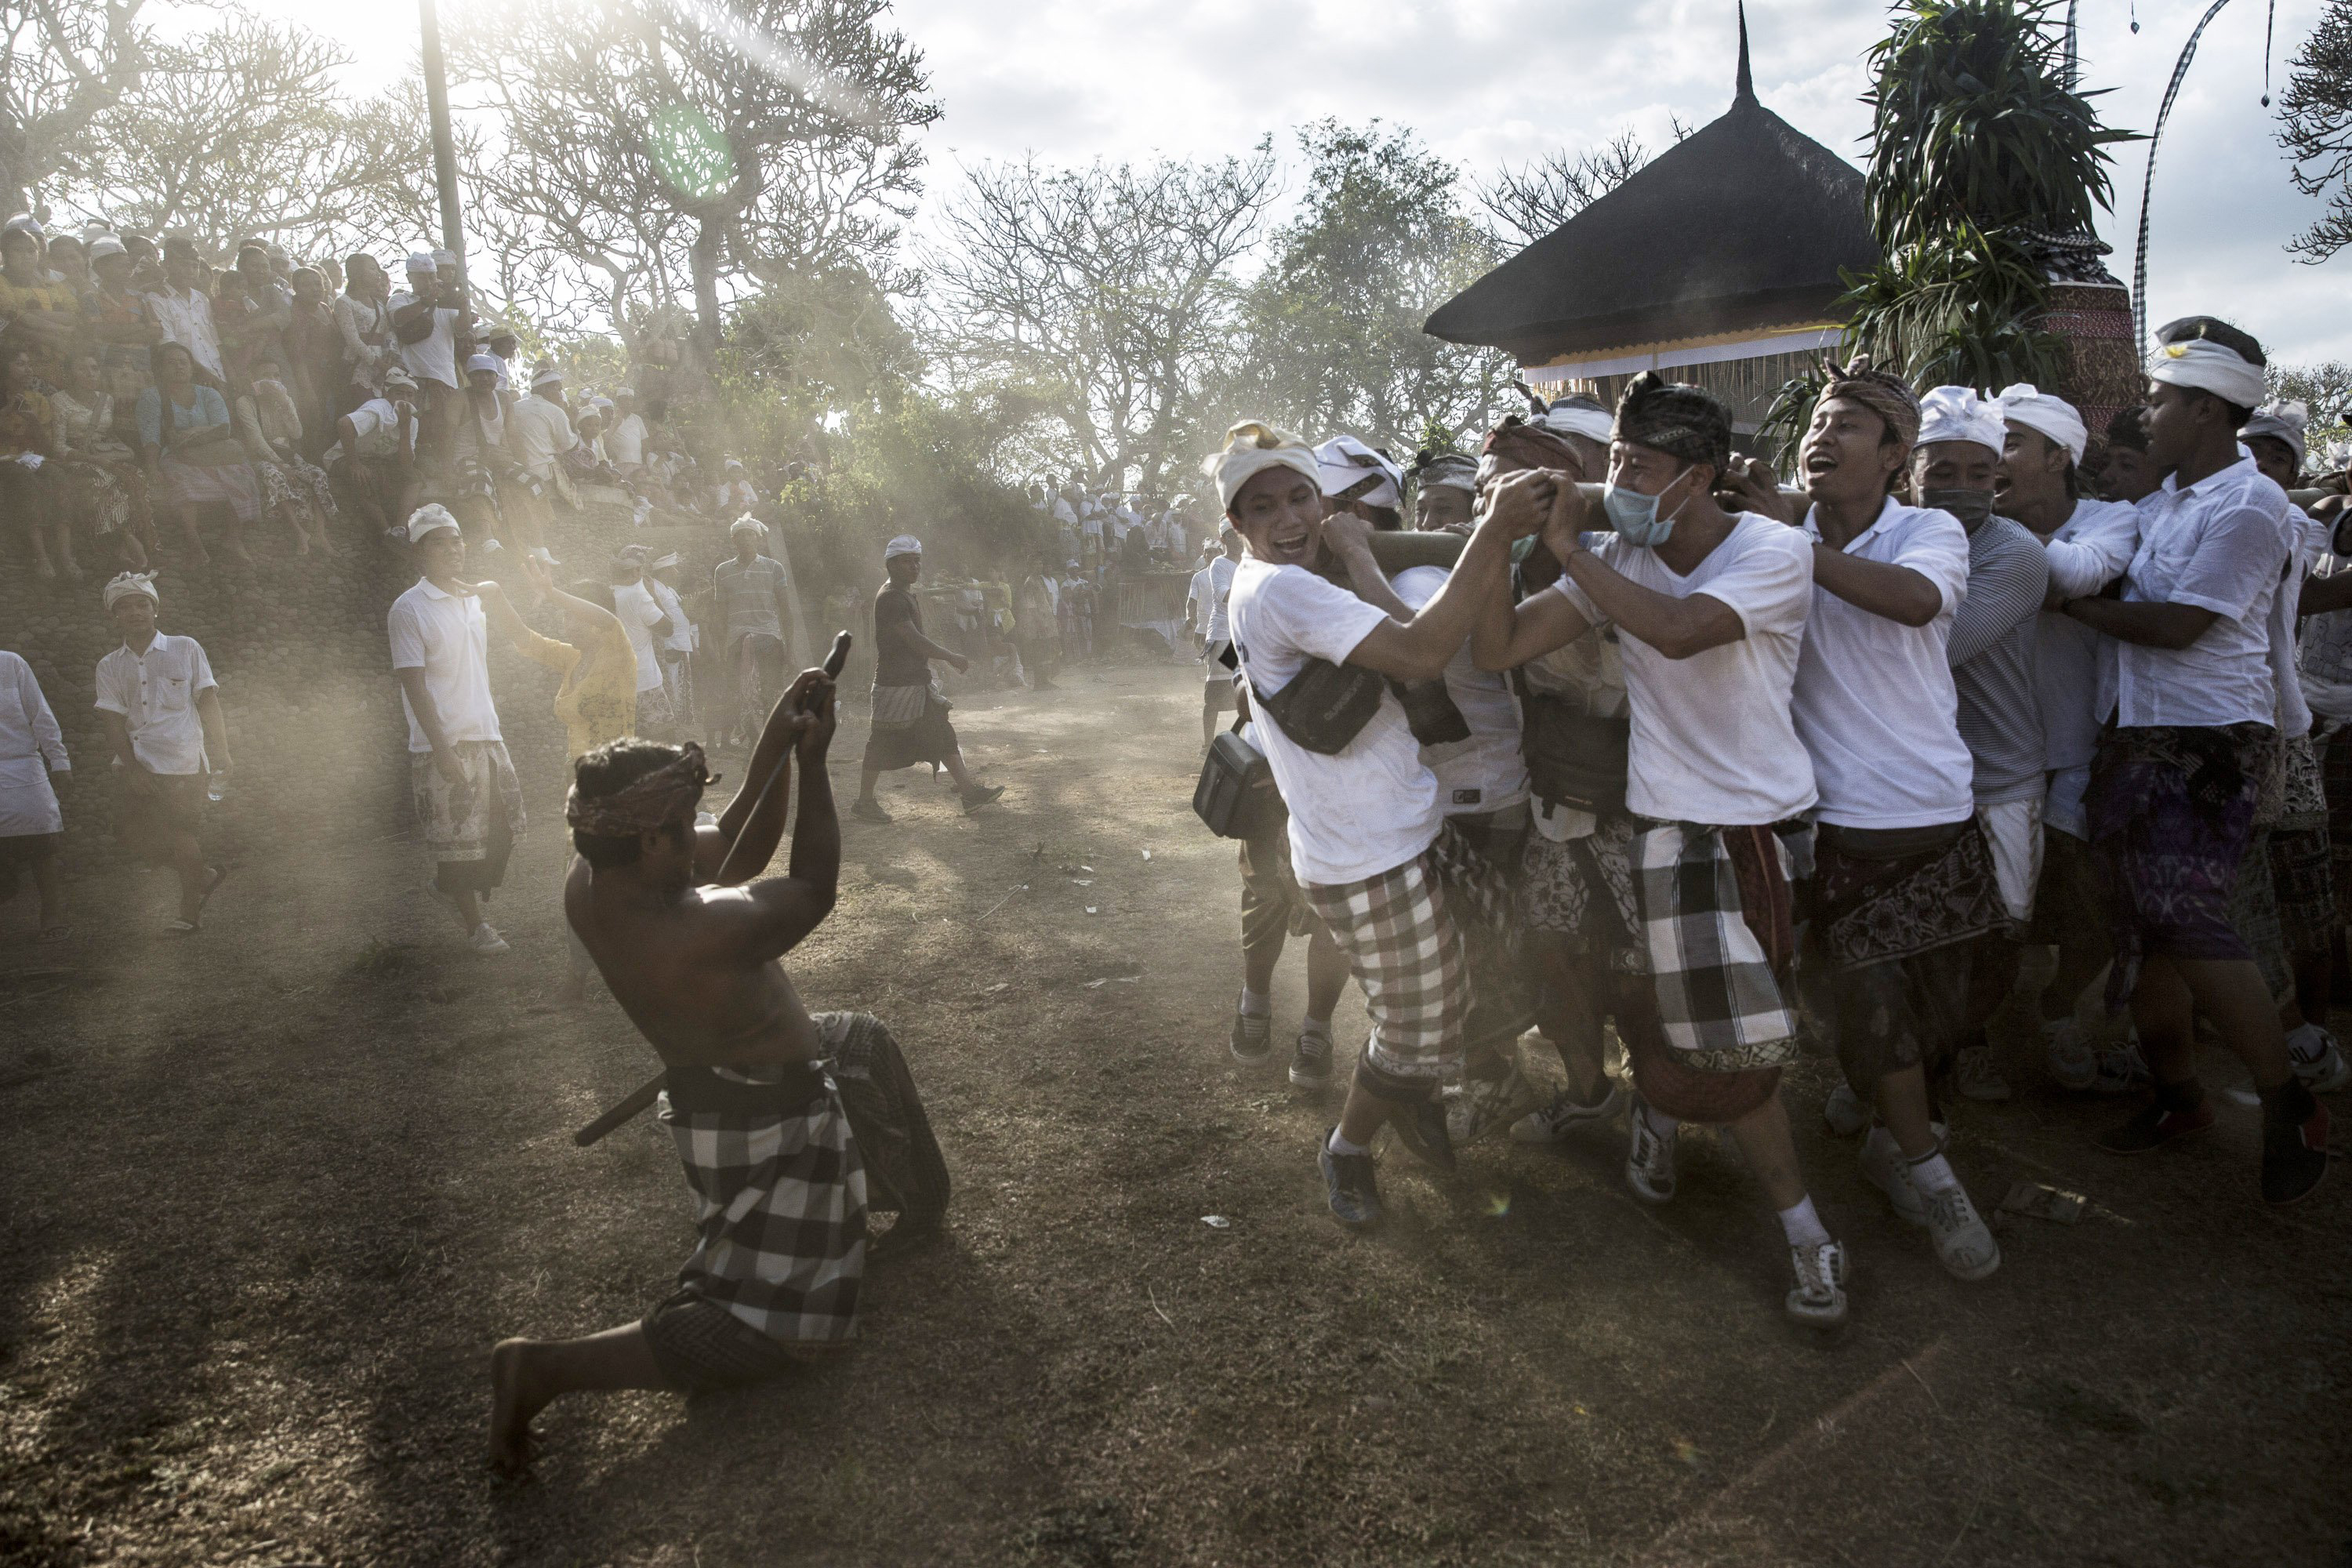 A Balinese man in a state of trance, stabs his chest infront of a palanquin, the symbol of god during Ngusaba Gumang Ritual in Bali, Indonesia on Oct. 6, 2014.